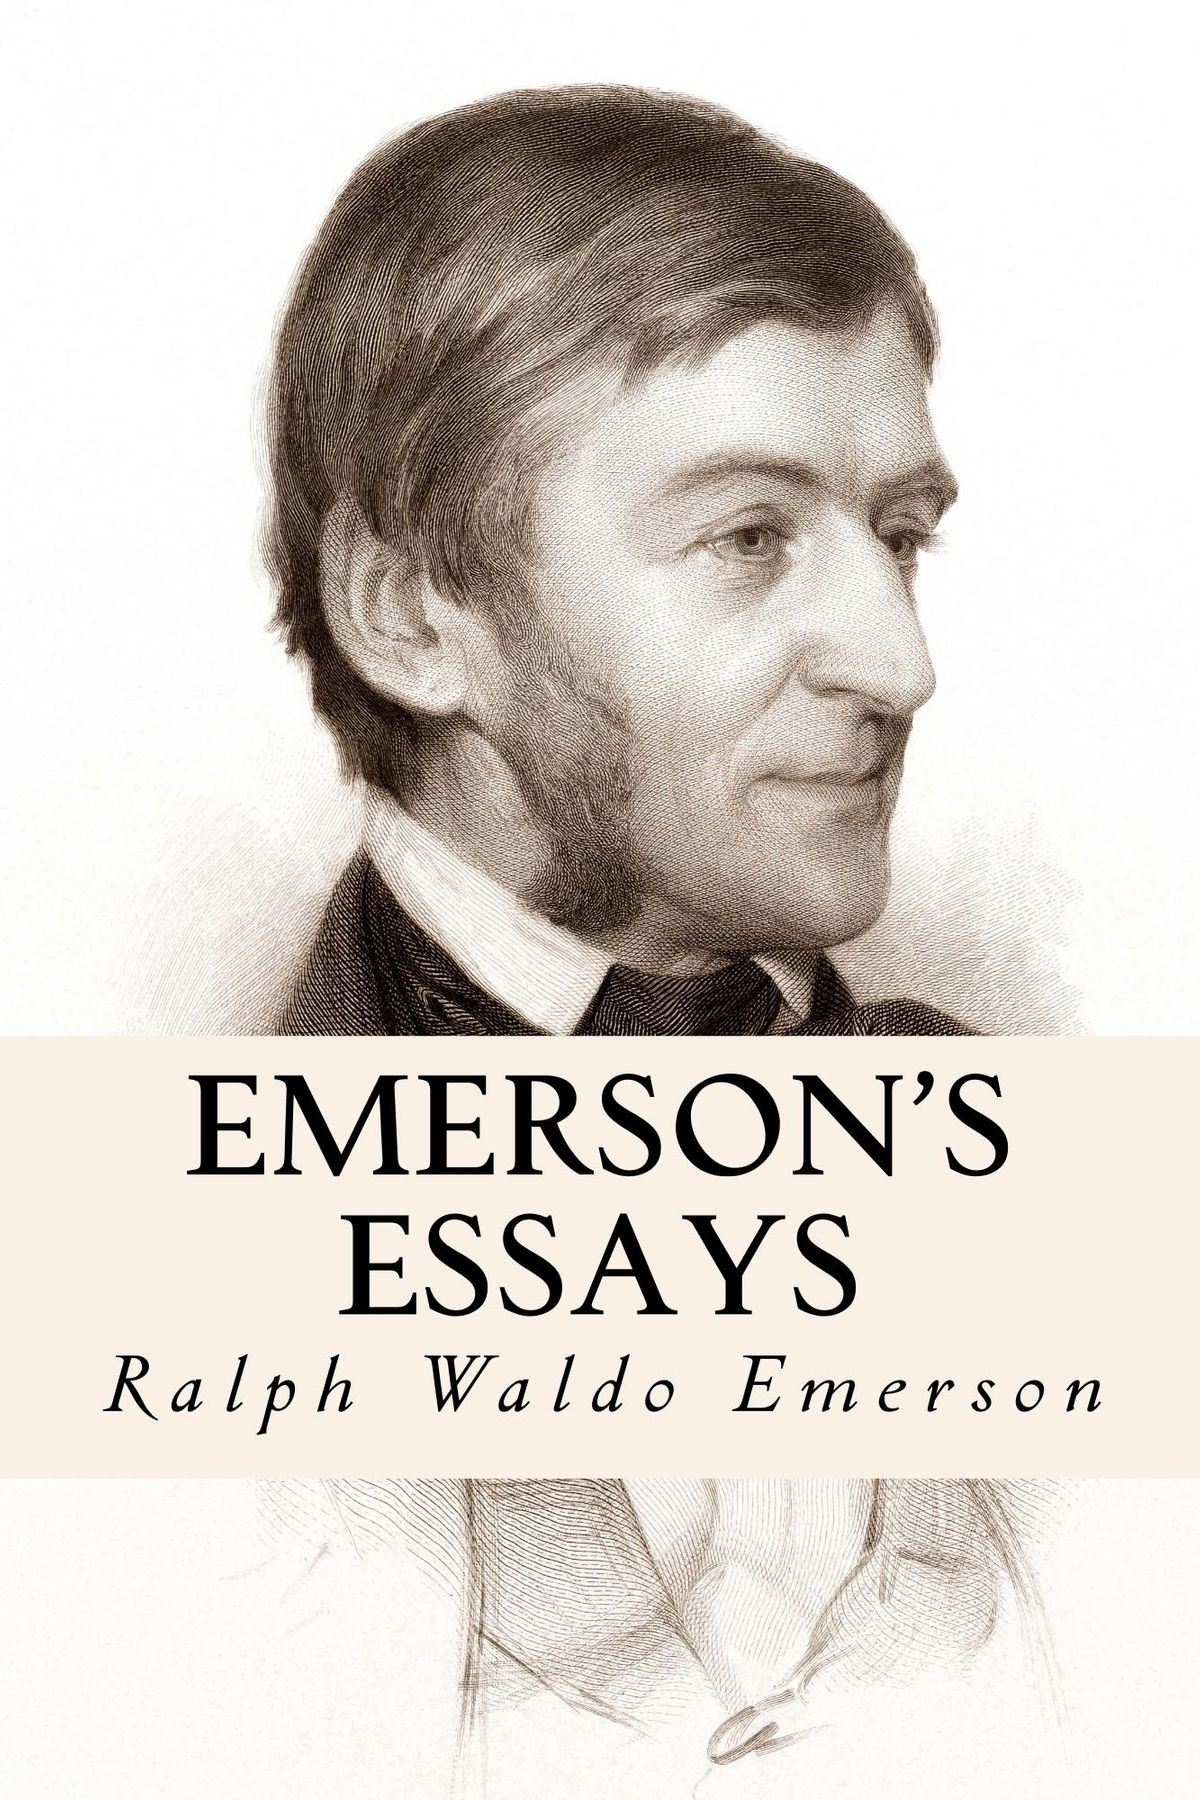 015 Emerson Essays S Essay Dreaded Self Reliance And Other Second Series Nature Full